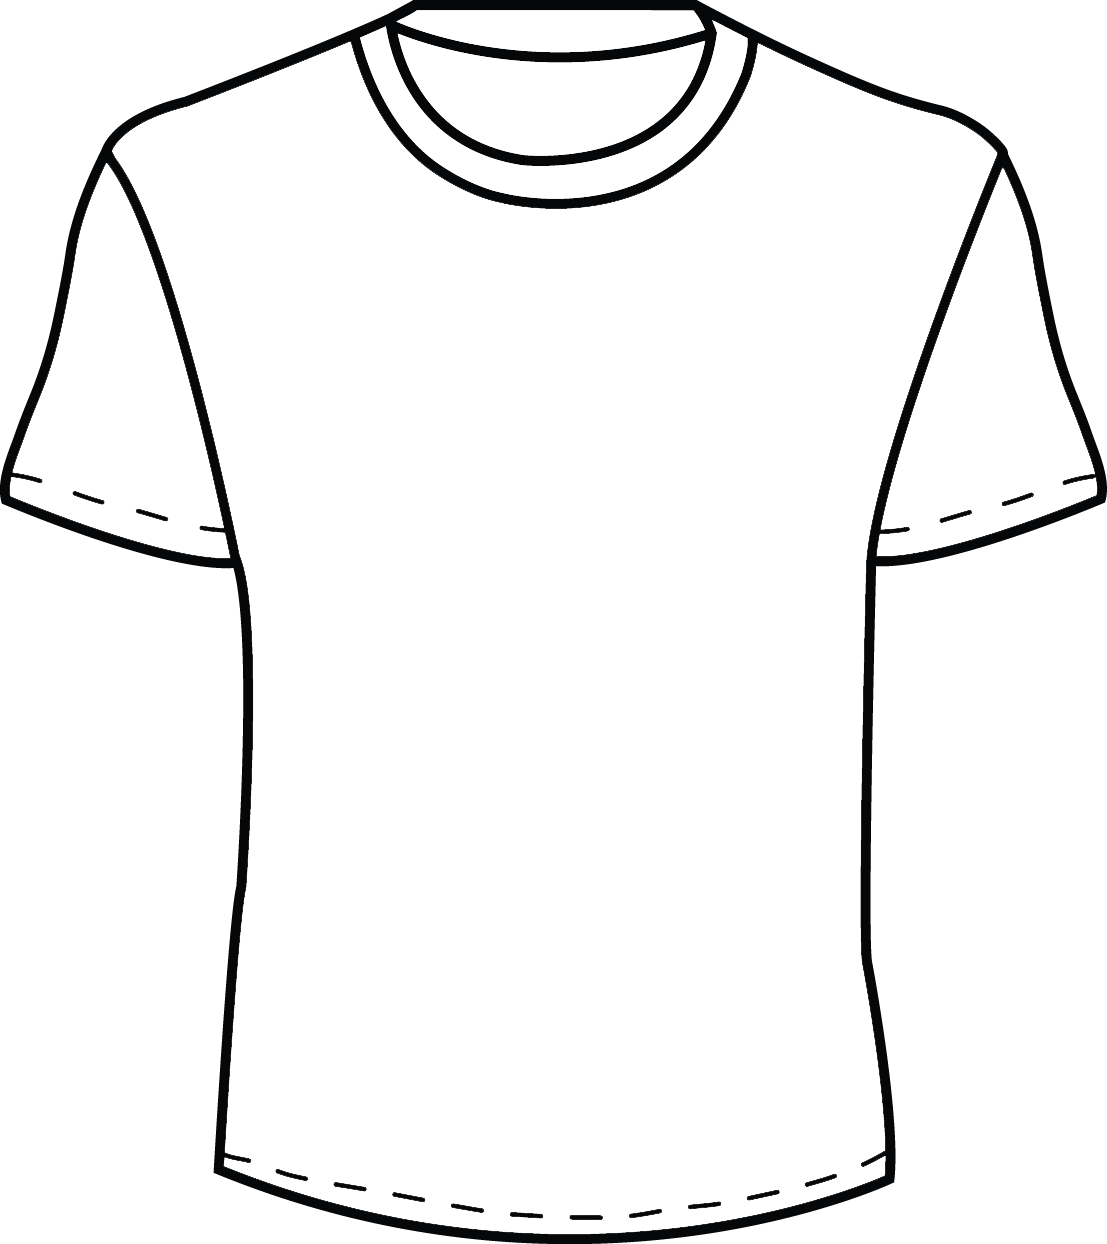 Blank T Shirt Template For Colouring   ClipArt Best ud61r3TI